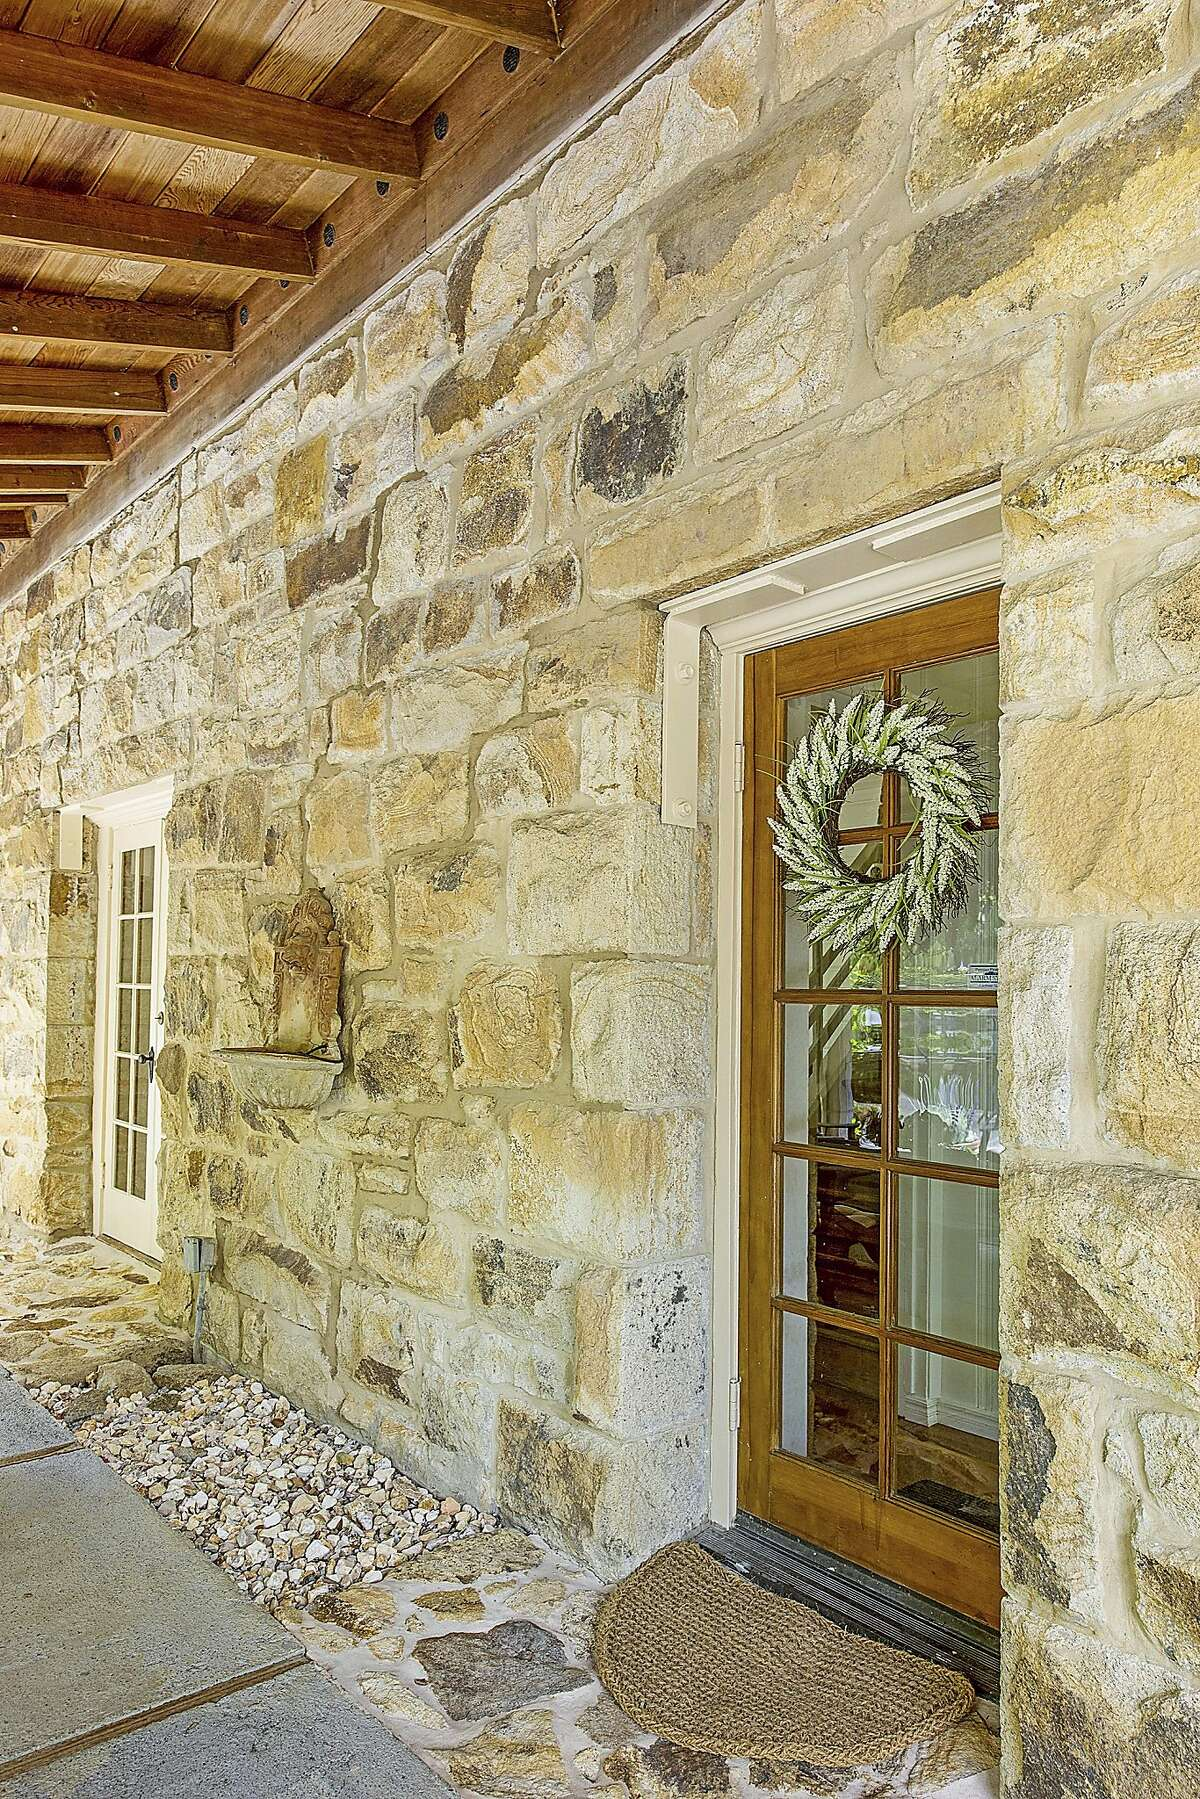 The home's stone walls are more than a century old.